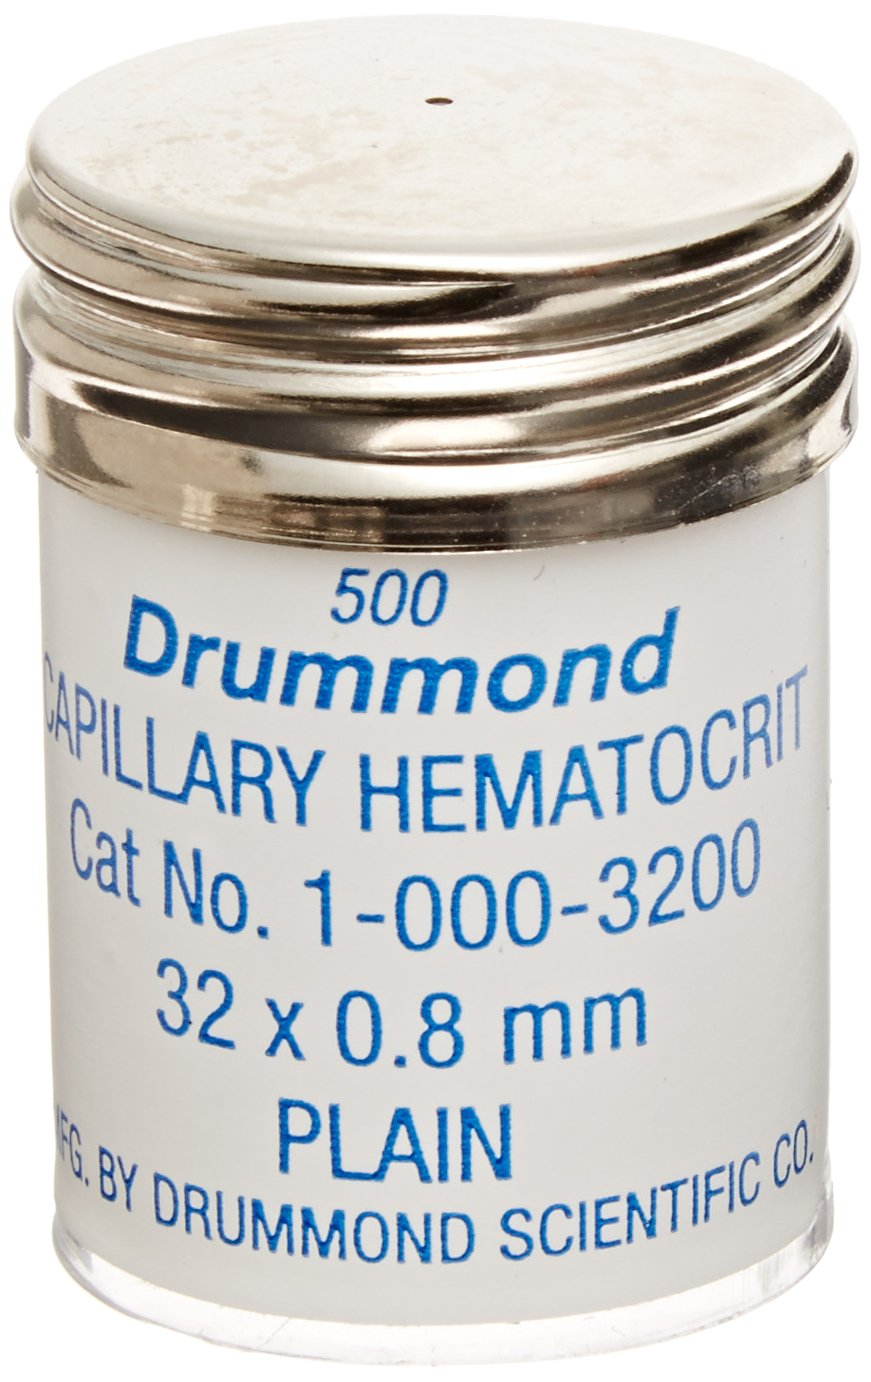 Drummond Scientific 1-000-3200 Microhematocrit Tubes, Plain, 32mm Length, 0.8mm OD, 0.1mm Wall Thickness (Pack of 500)